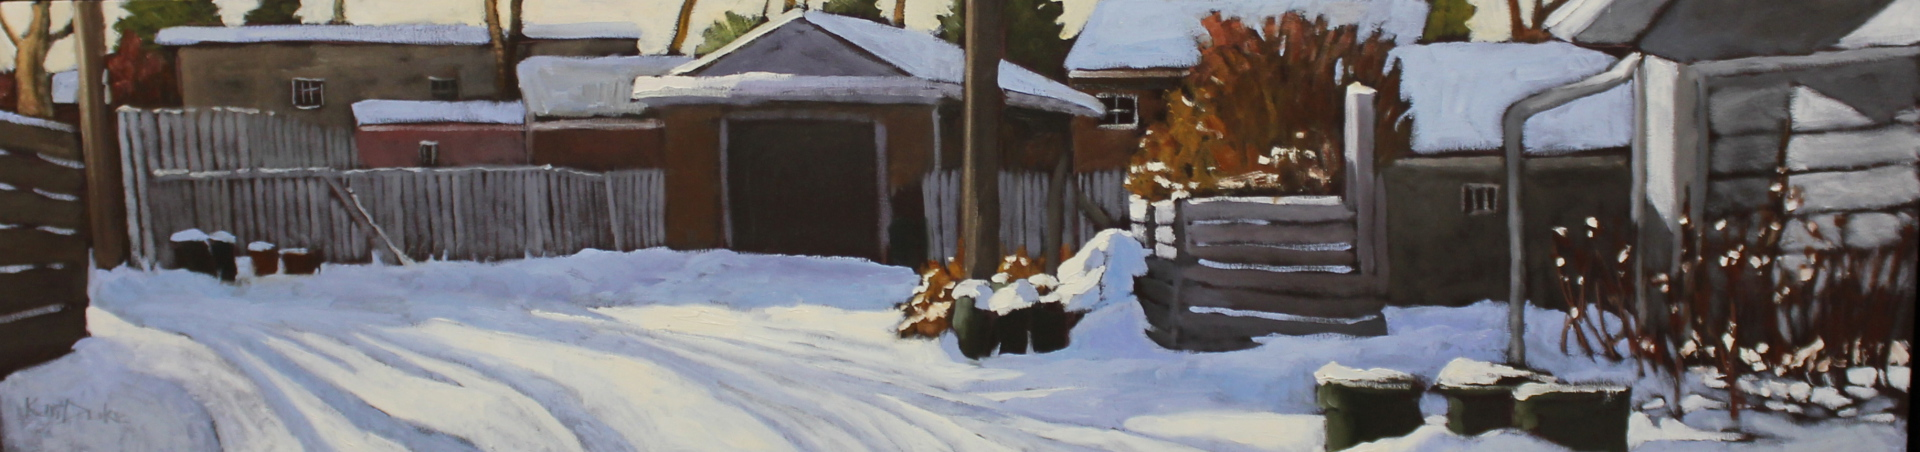 SNOW TRACKS - 12X48 - OIL ON CANVAS - 2014